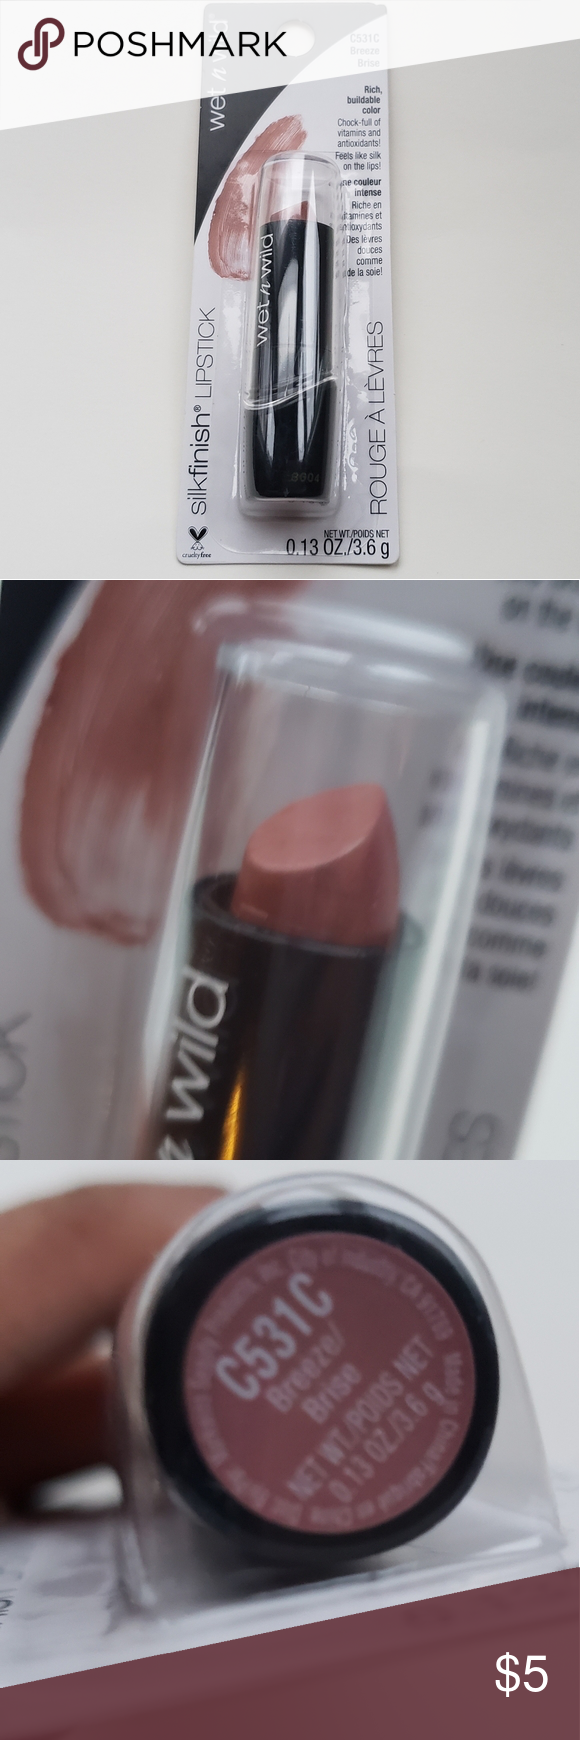 Photo of Silk Finish Nude Lipstick The Wet n Wild nude pinkish lipstick has a buttery col…